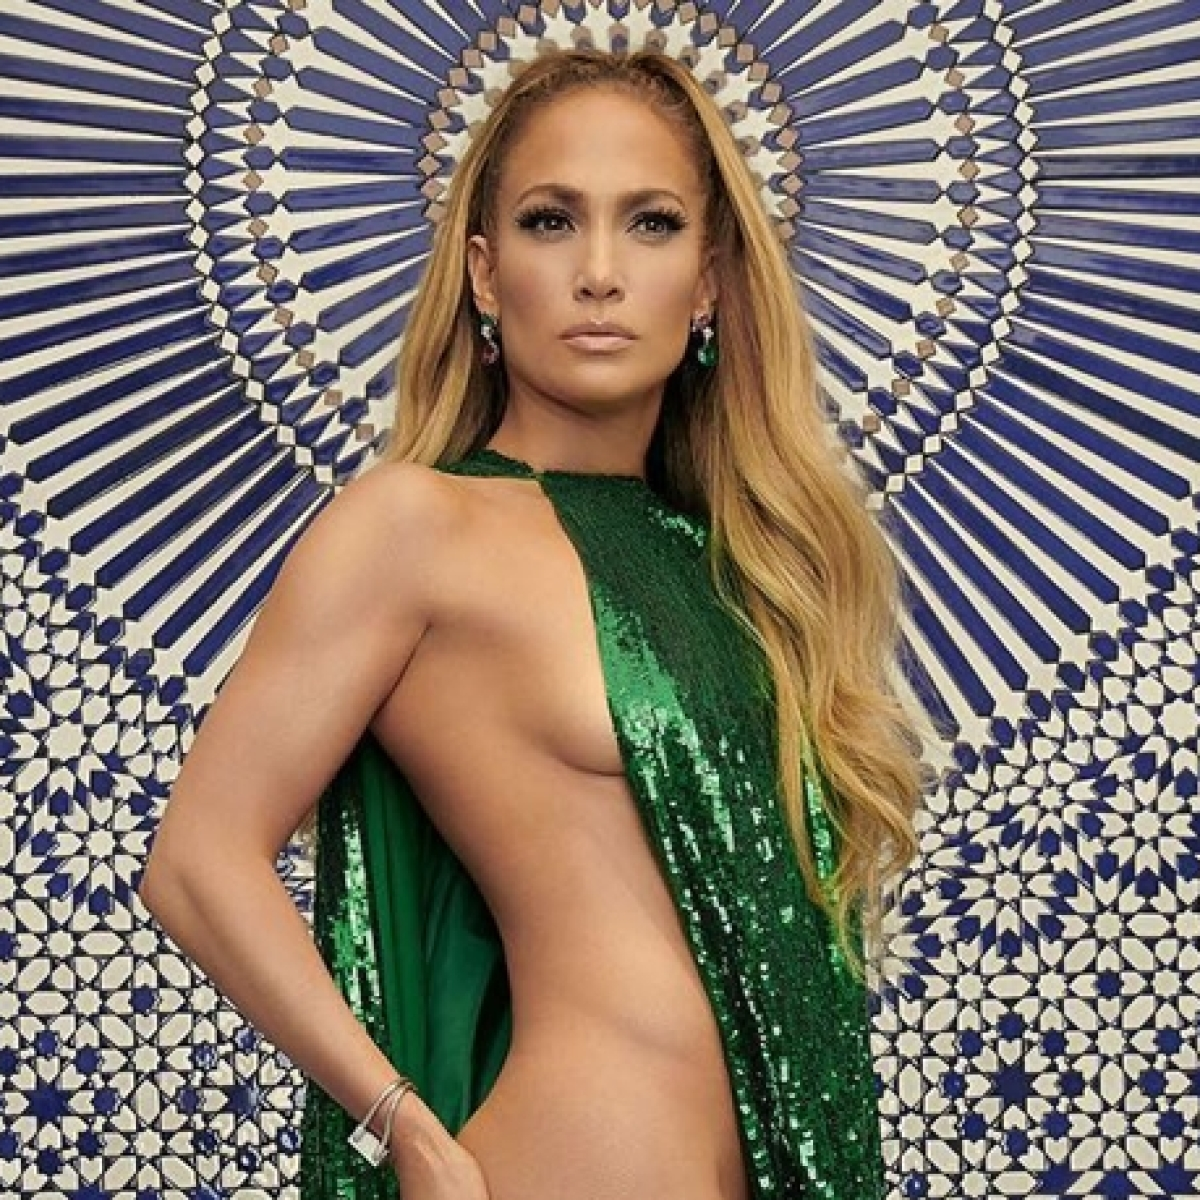 Jennifer Lopez considered stripping before her career took off